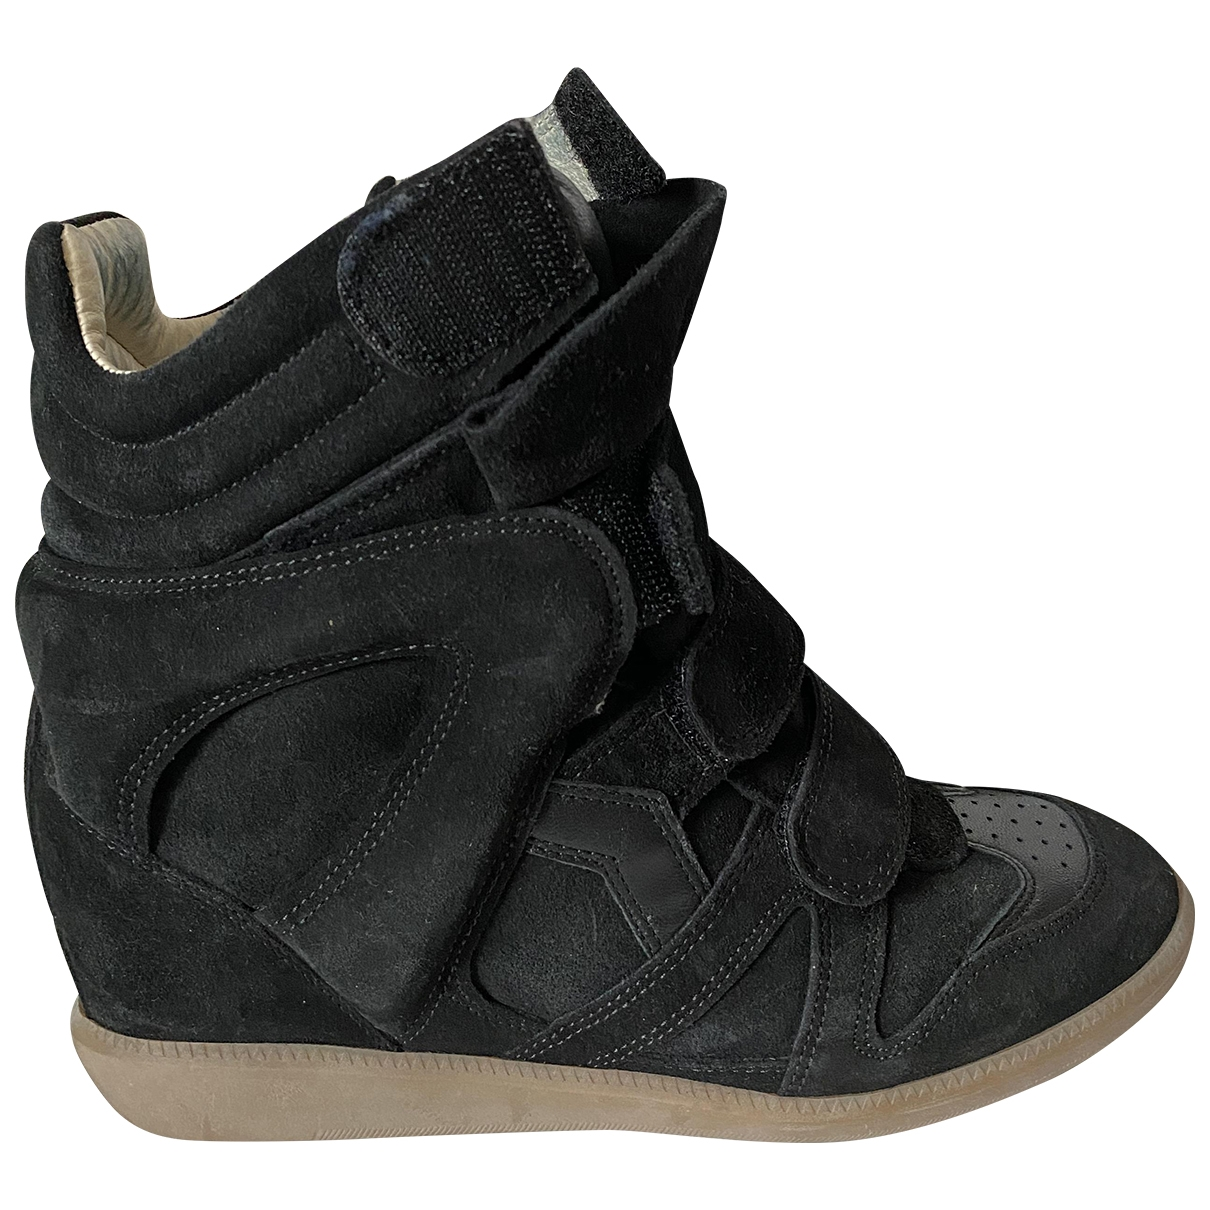 Isabel Marant Willow Black Suede Trainers for Women 38 EU